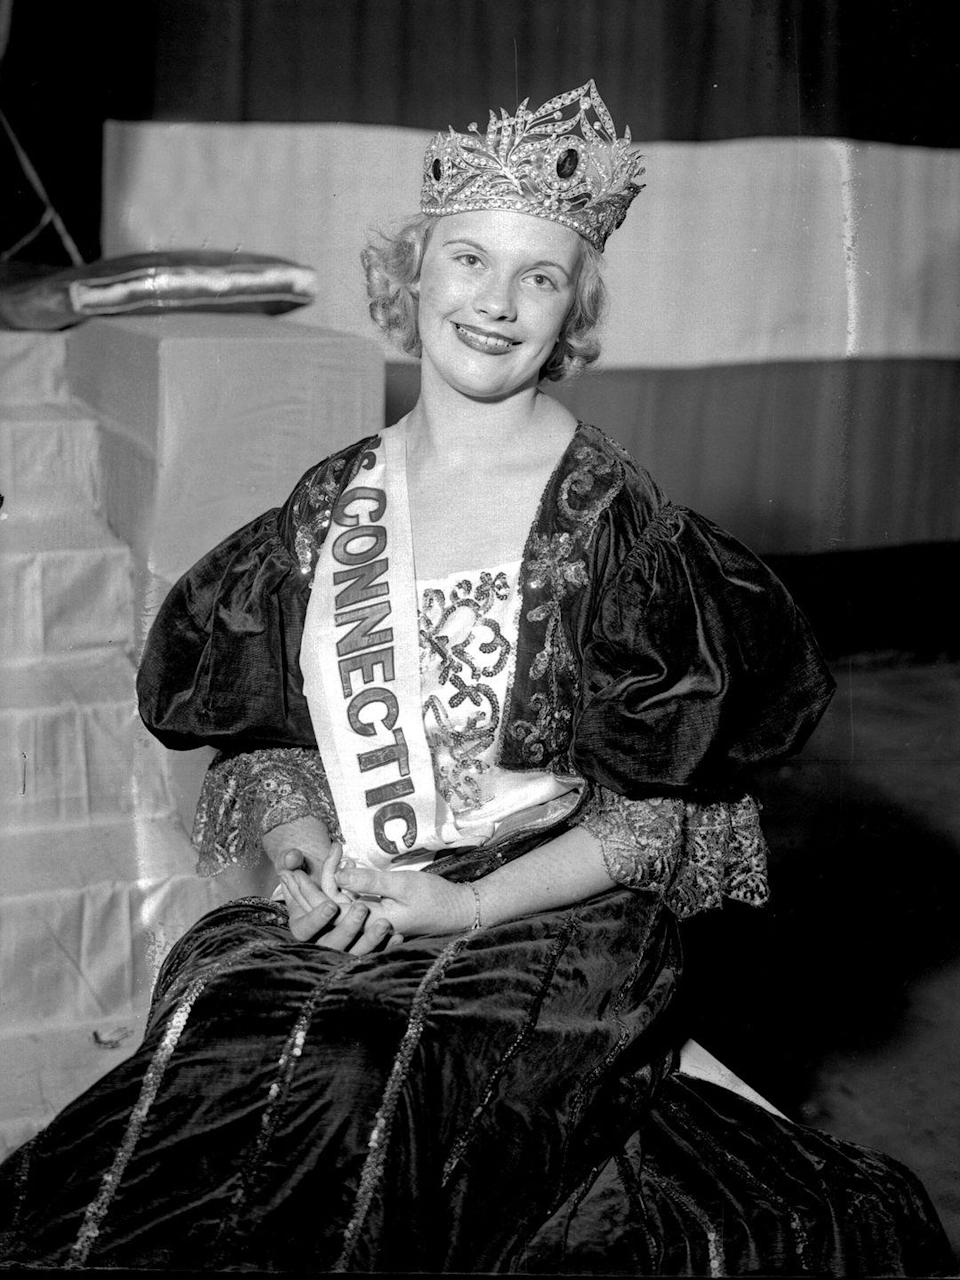 <p>When Marion Bergeron from Connecticut won Miss America, she was wearing an outfit fit for a queen. The puff sleeves and Renaissance design gave off major <em>Romeo and Juliet </em>vibes. </p>